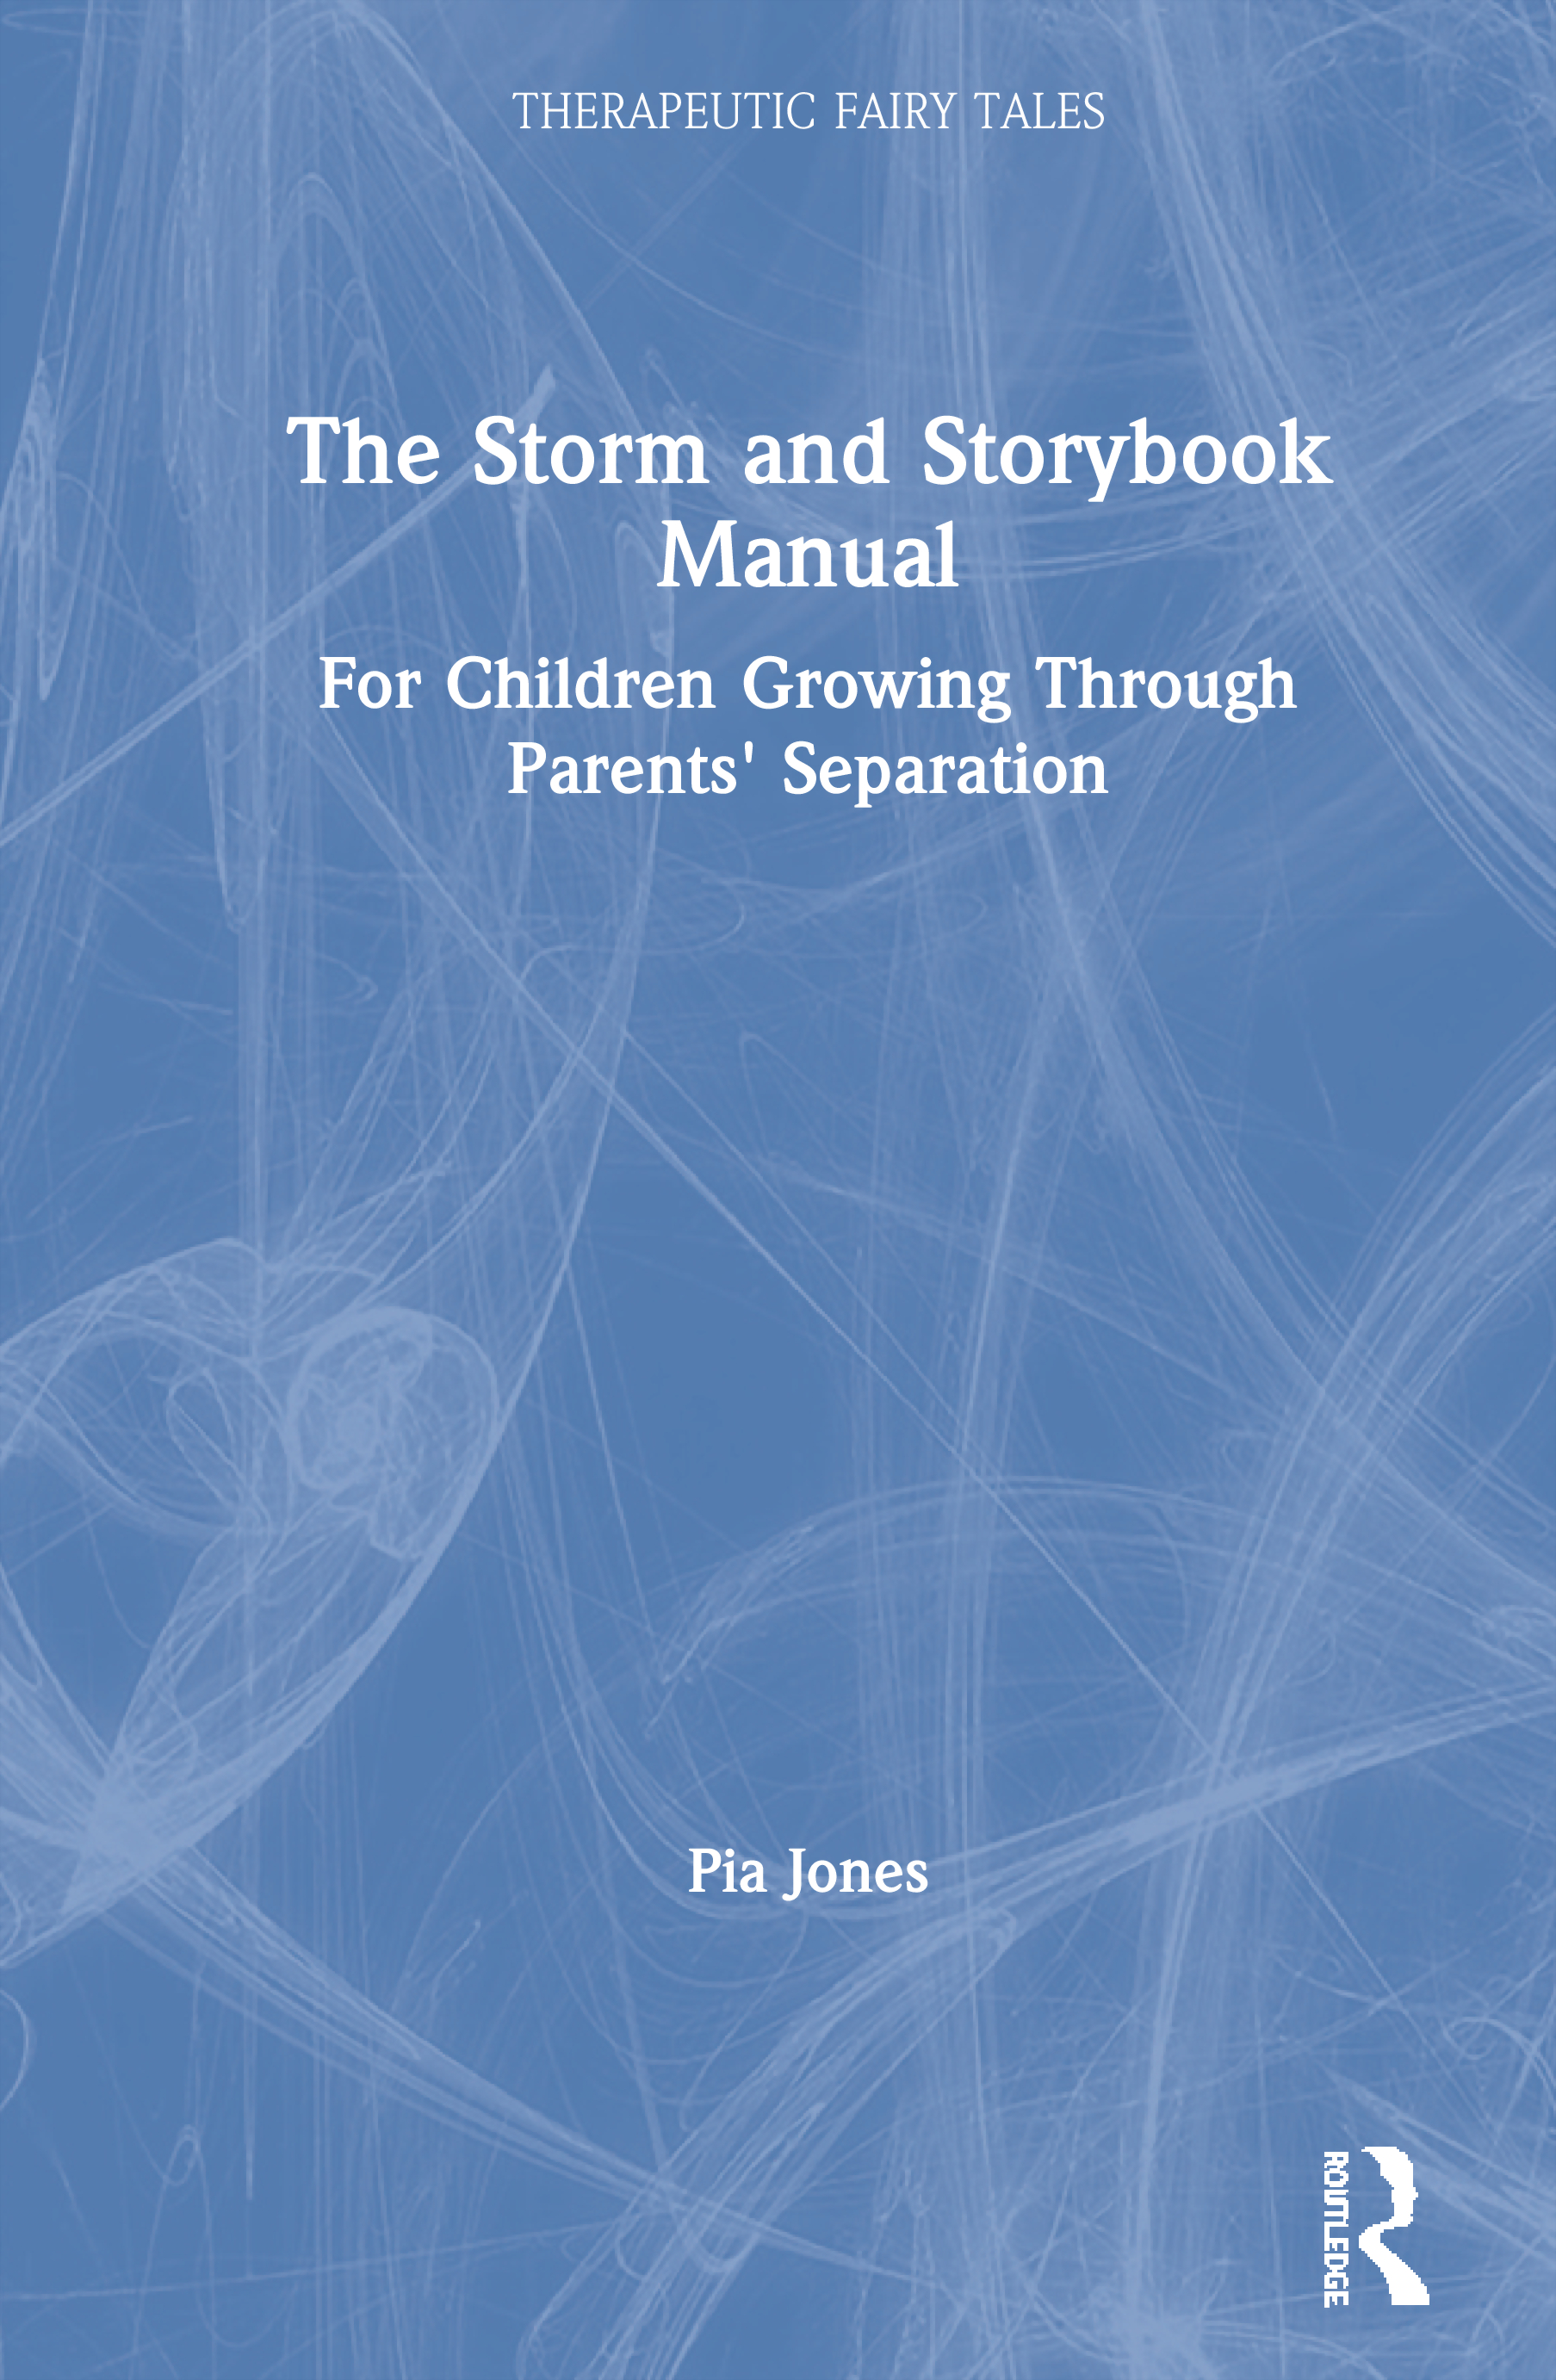 The Storm and Storybook Manual: For Children Growing Through Parents' Separation book cover